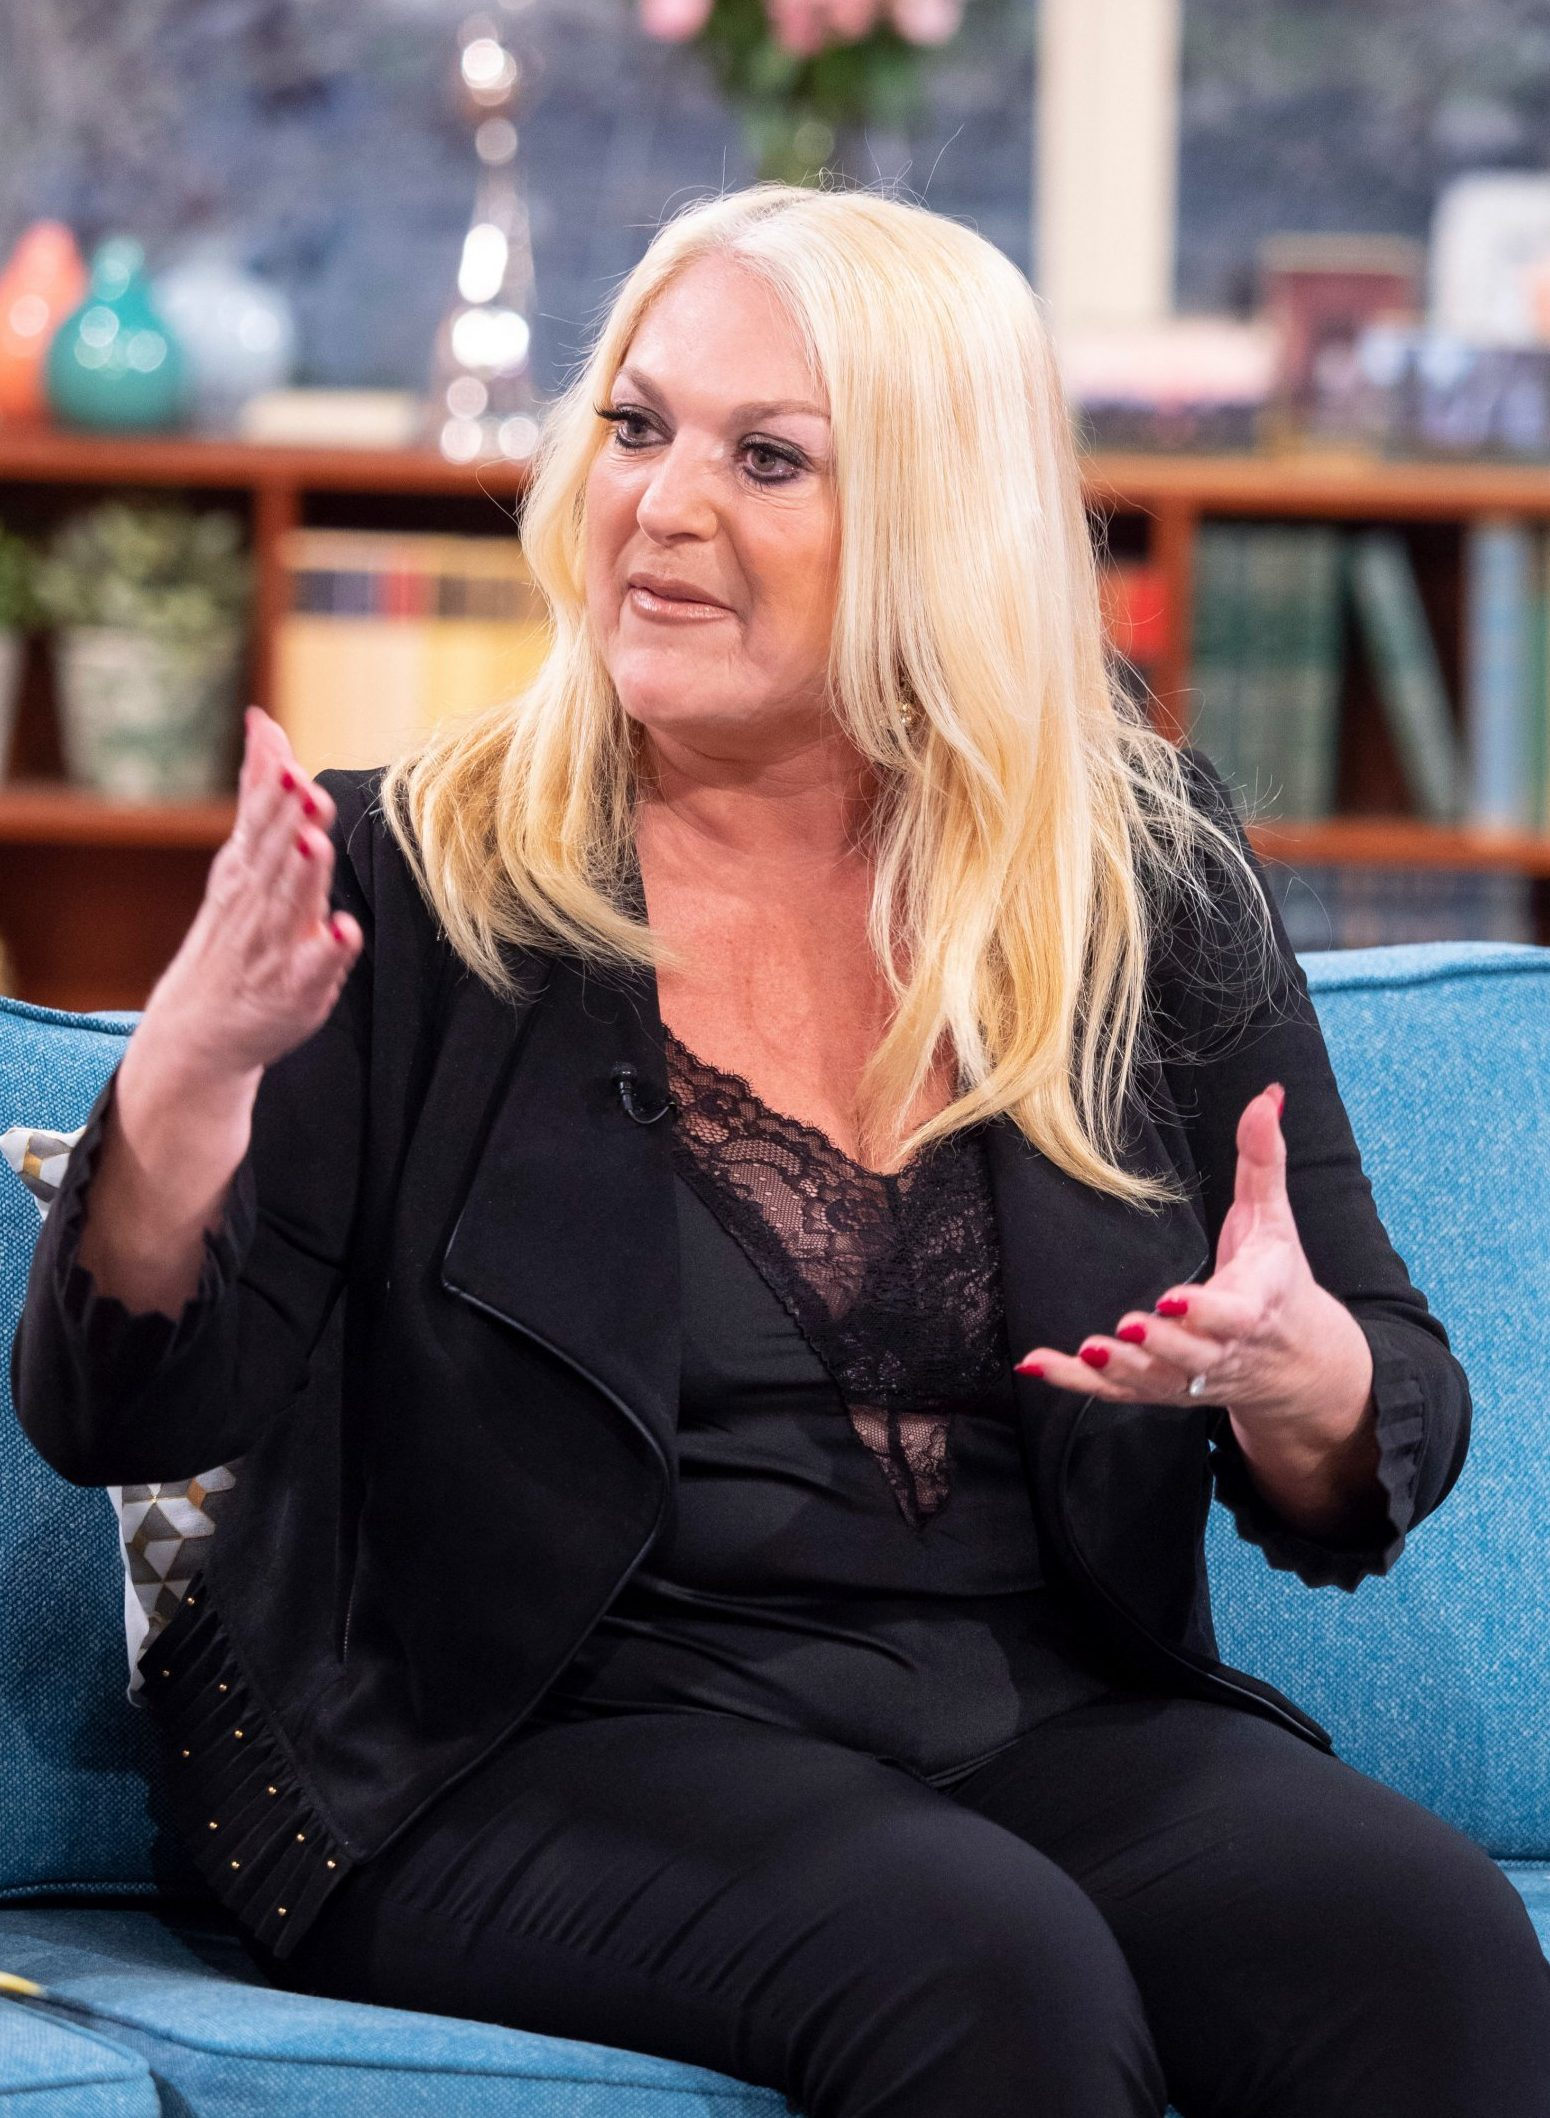 Editorial use only Mandatory Credit: Photo by Ken McKay/ITV/REX (10169592b) Vanessa Feltz 'This Morning' TV show, London, UK - 27 Mar 2019 EXCLUSIVE: THE SECRET BEHIND VANESSA FELTZ?S WEIGHT LOSS Her recent three stone weight-loss has been the basis of media speculation - but there's been no ?quick-fix? behind Vanessa Feltz?s slimmer physique. Instead, it?s the result of an agonising - and at times debilitating - battle with her gastric band. Unable to swallow food or get a good night's sleep, Vanessa made the difficult decision to take it out once and for all. And, after deciding to opt for a gastric bypass instead - Vanessa joins us following a dramatic time in intensive care.